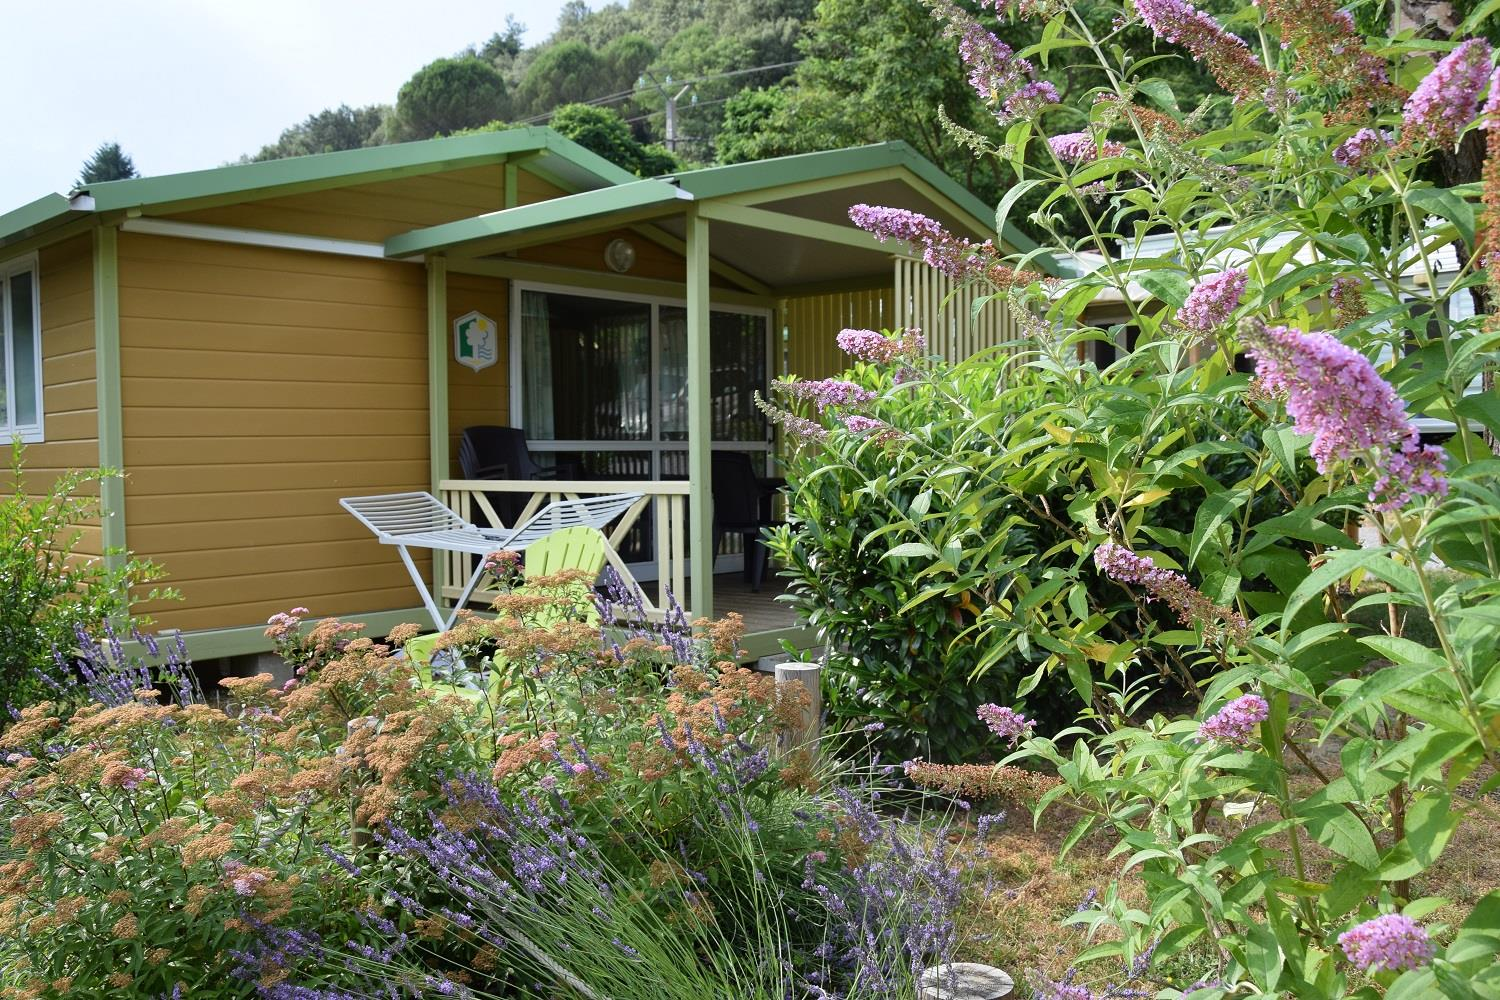 Accommodation - Chalet Gitotel 25 M² - Camping la Charderie